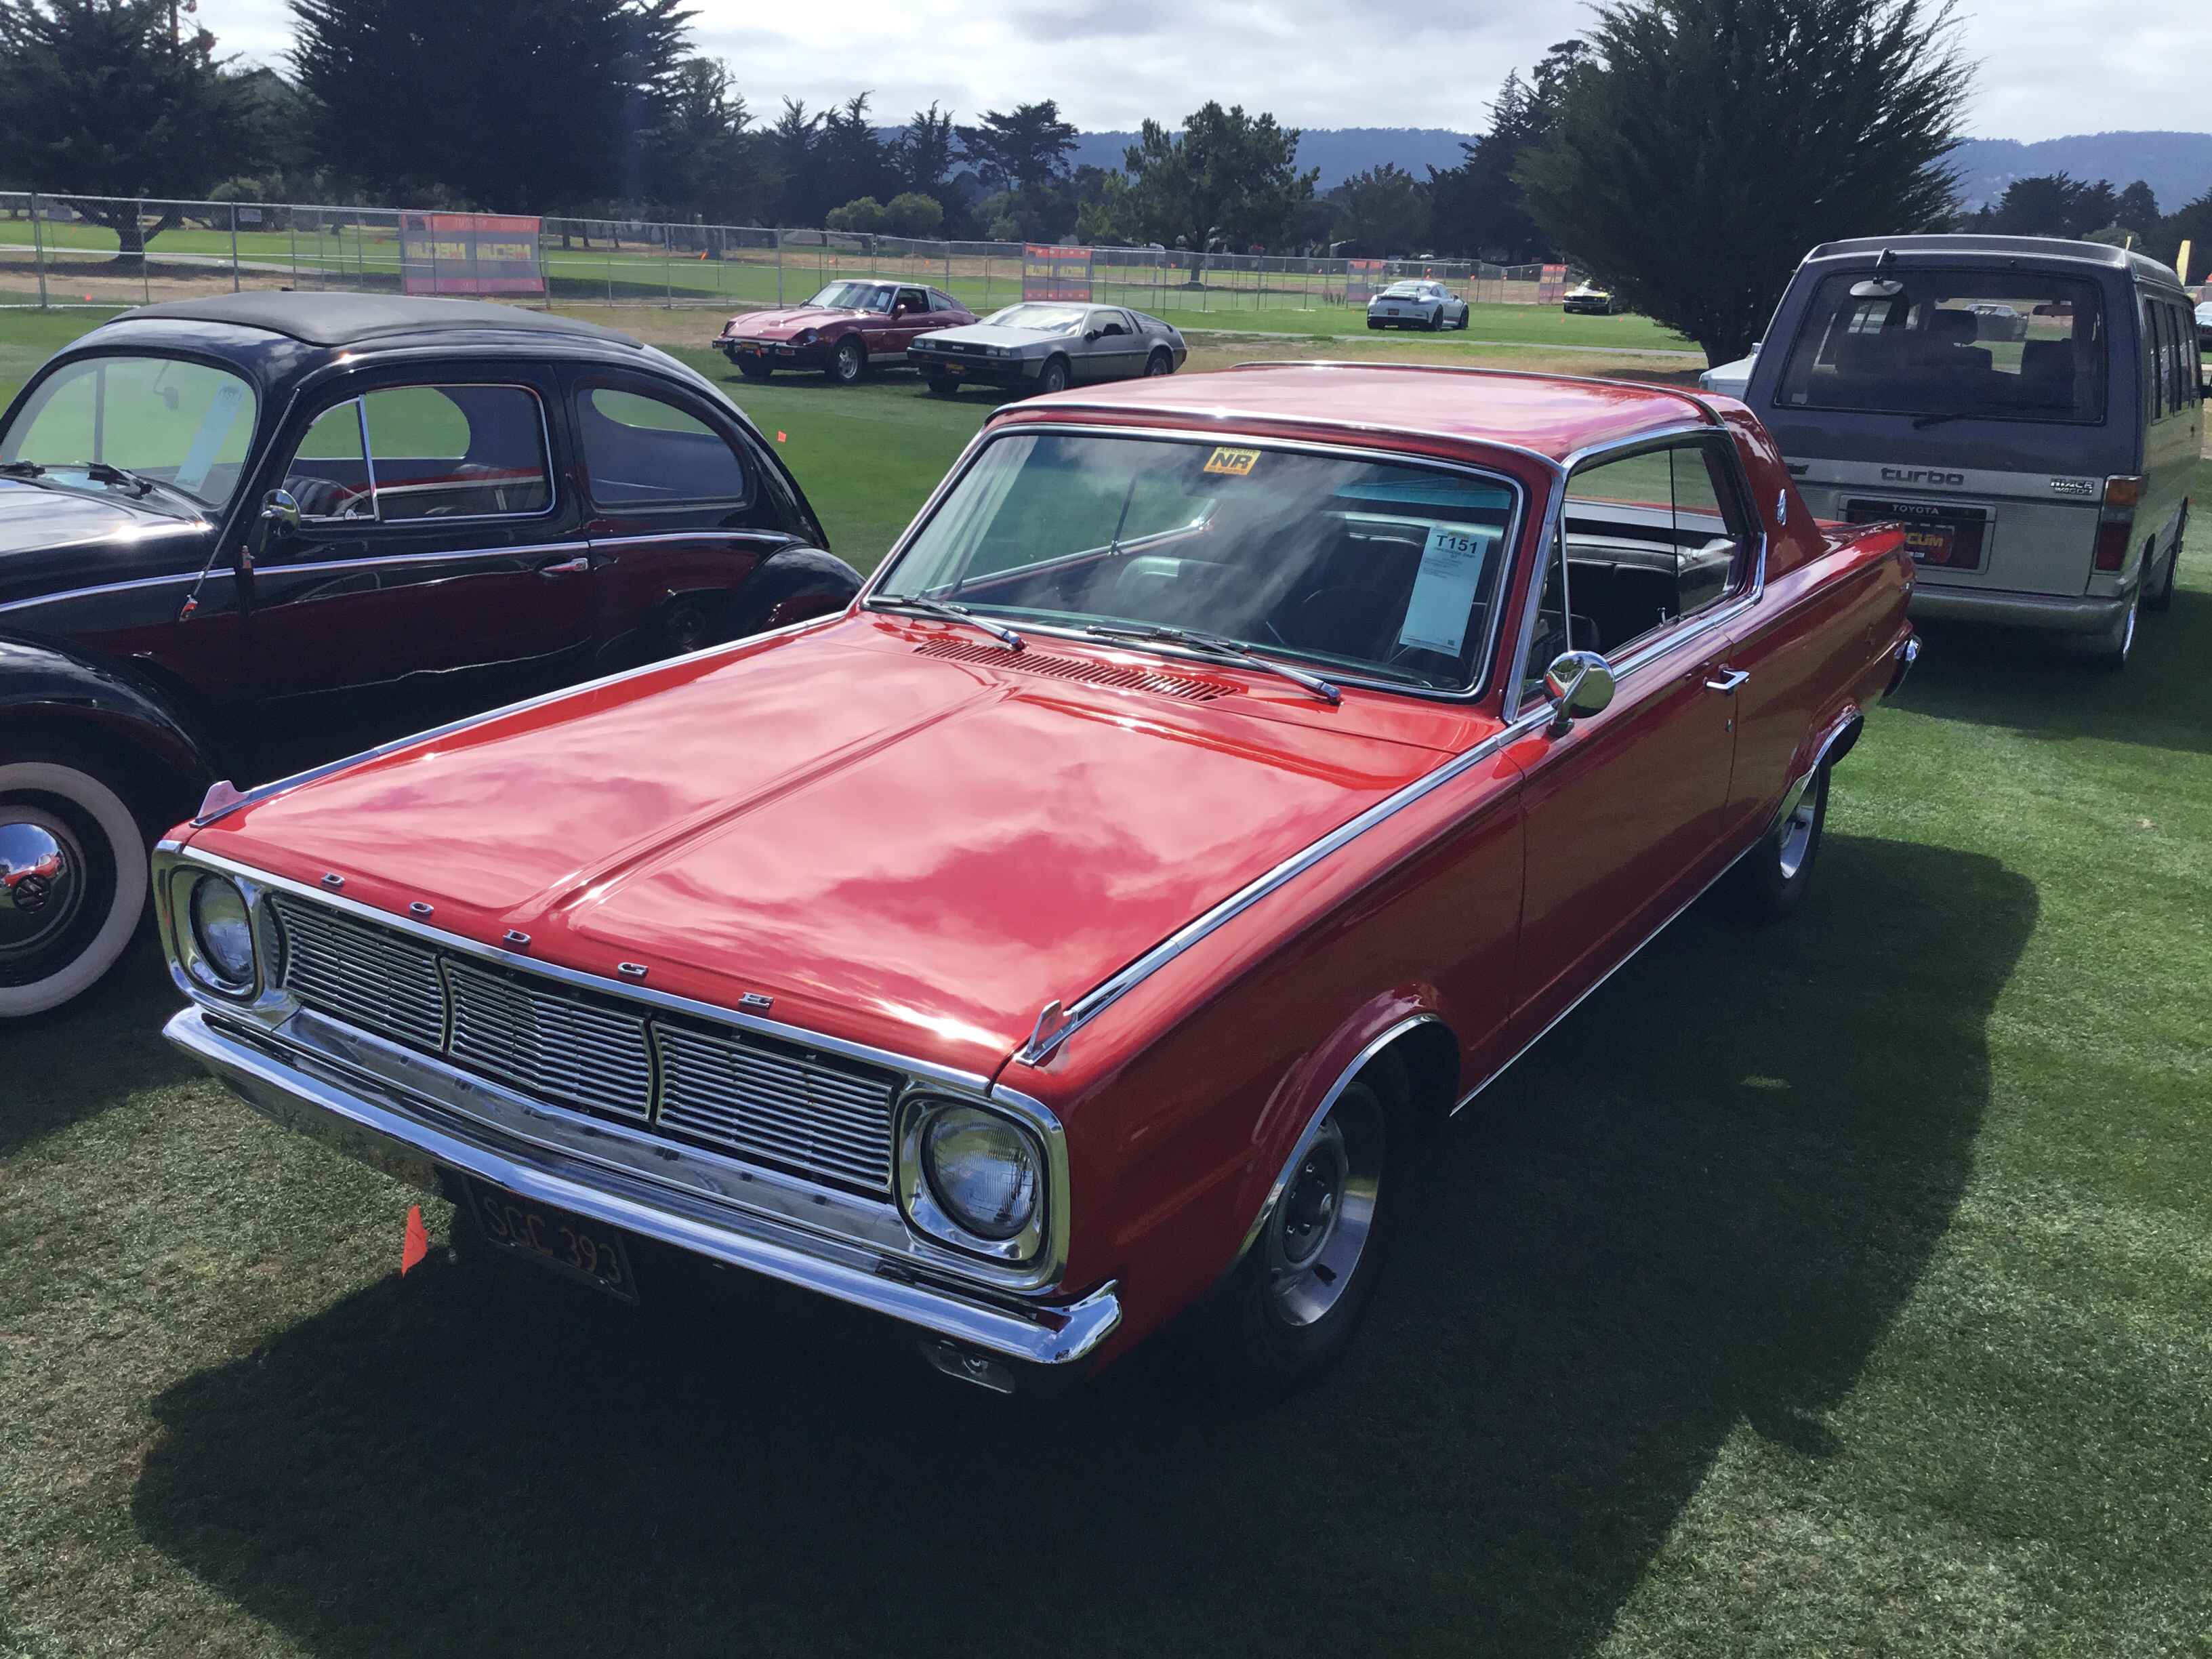 1966 Dodge Dart 170 Values Hagerty Valuation Tool 1964 Gts Gt Hardtop Coupe 6 Cyl 225cid 145hp 1bbl